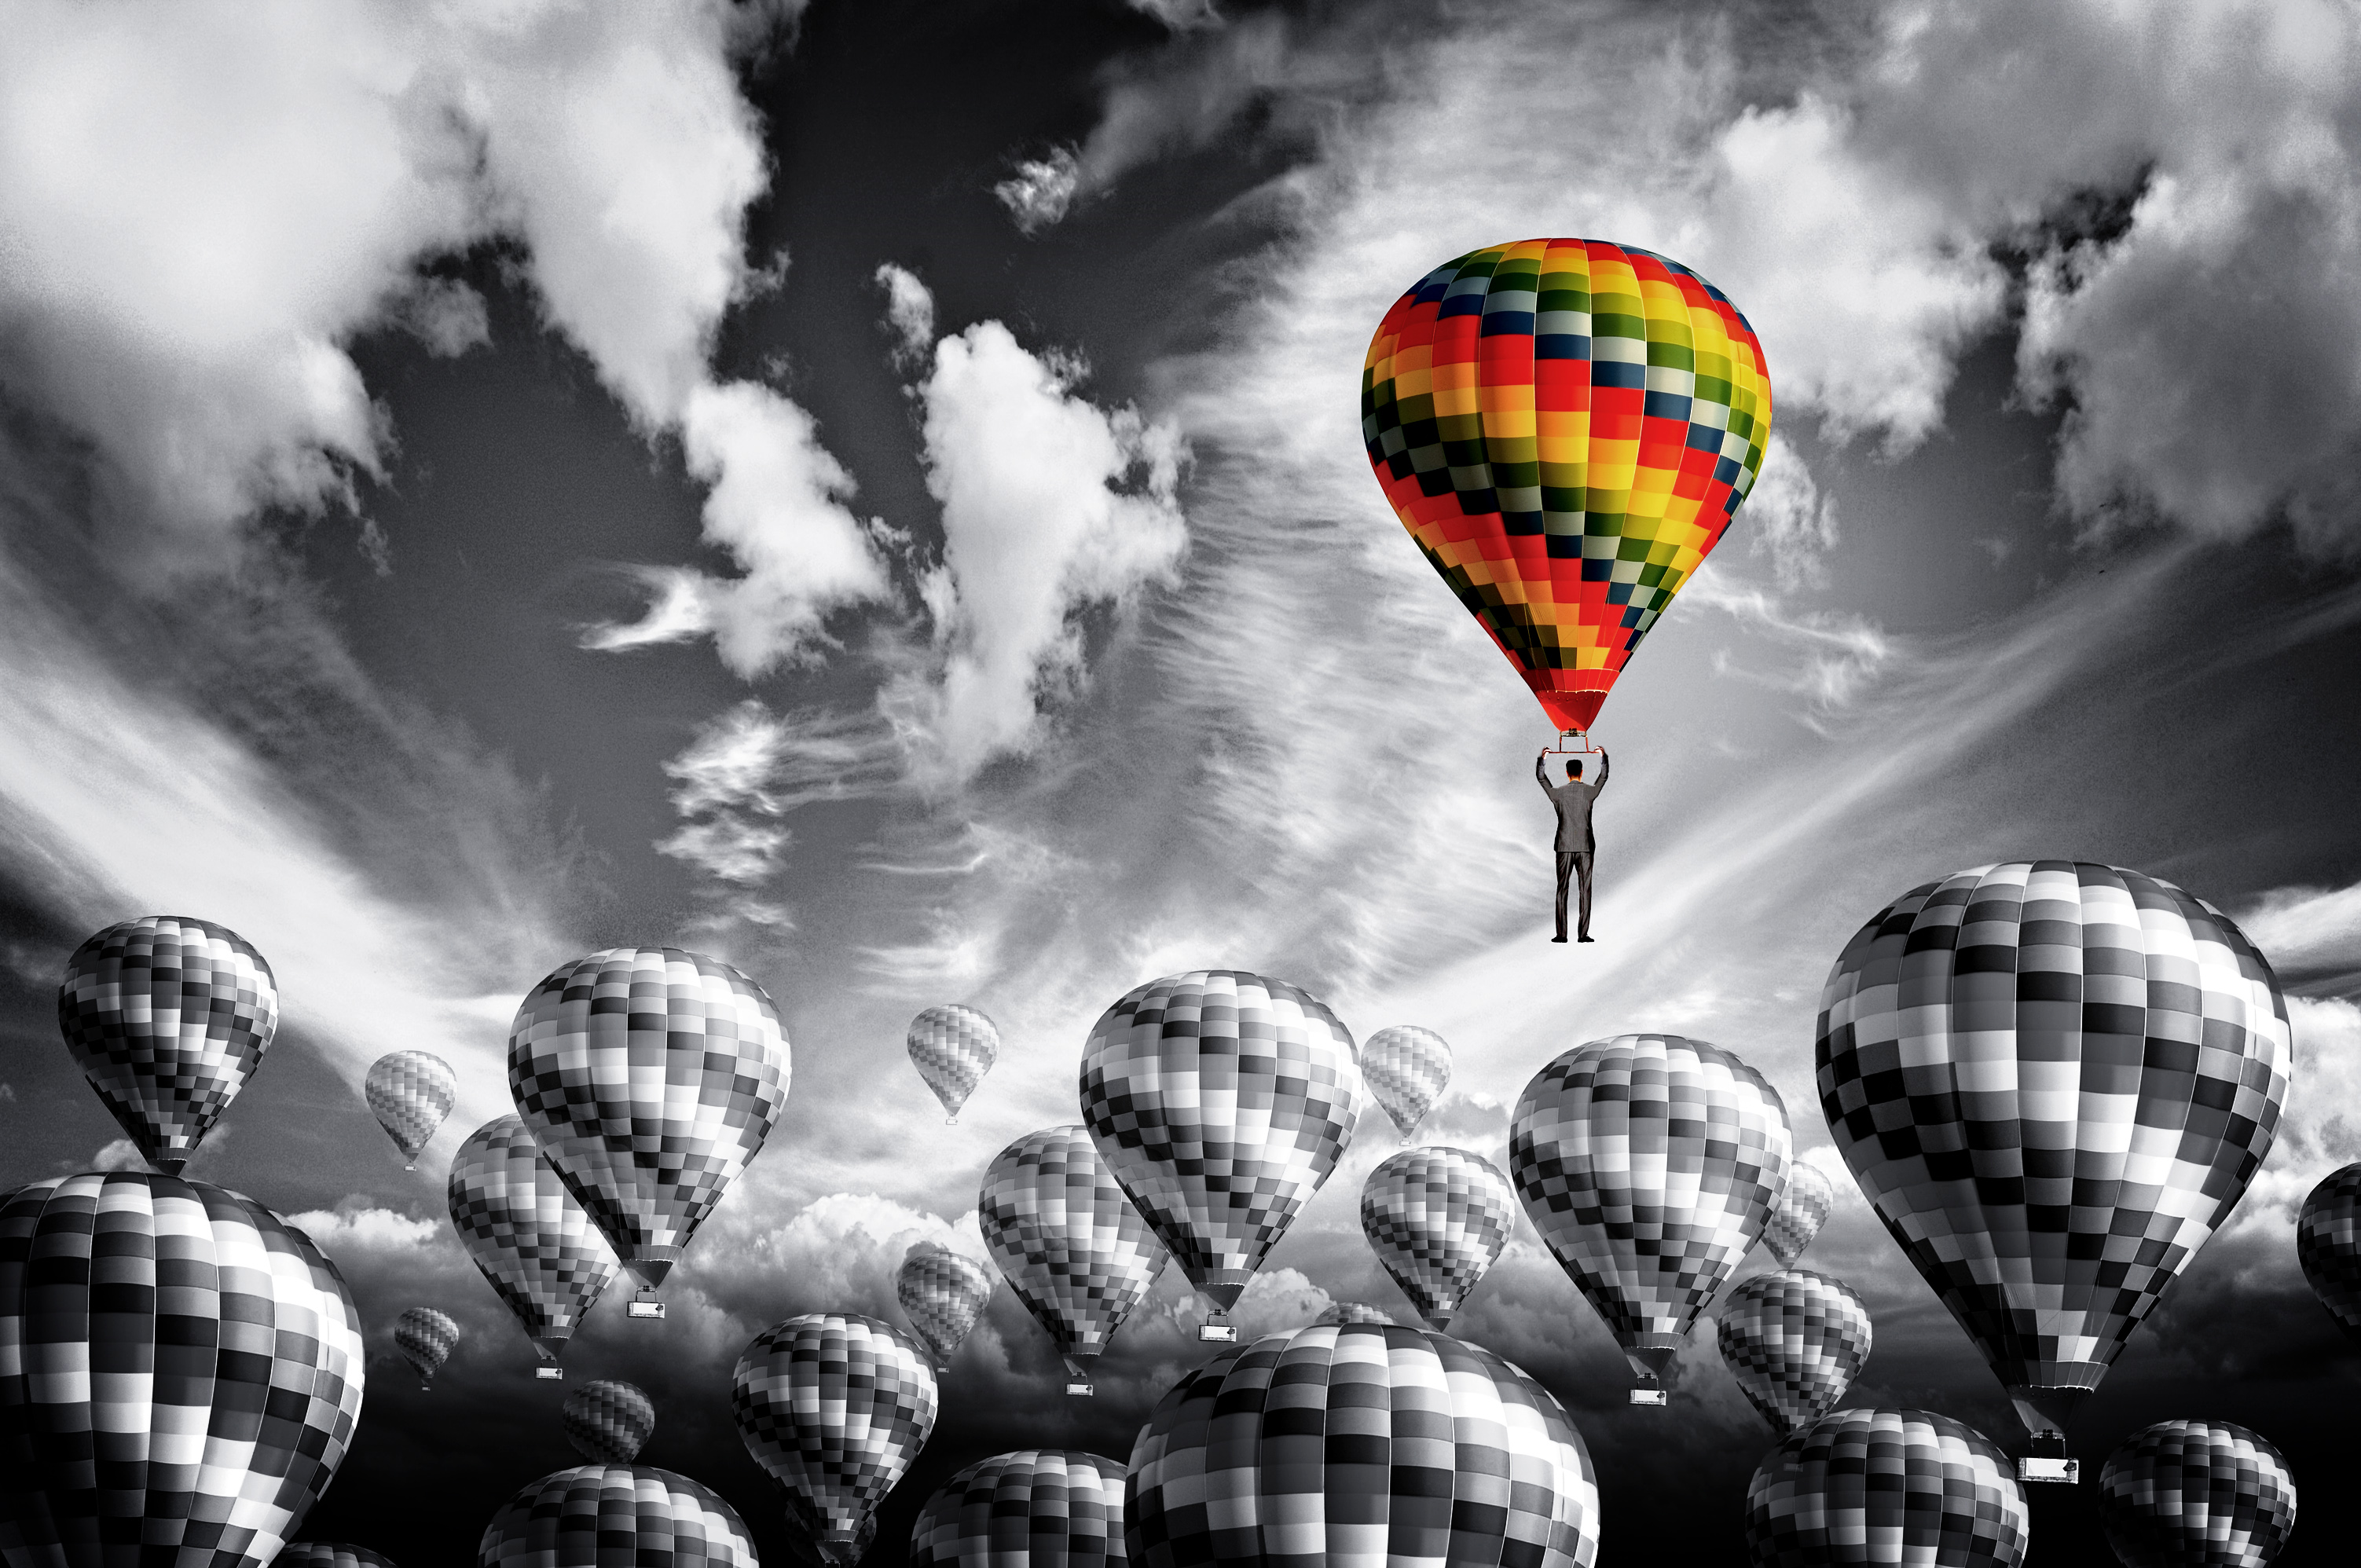 Businessman leader rising in a hot air balloon - leadership concept photo